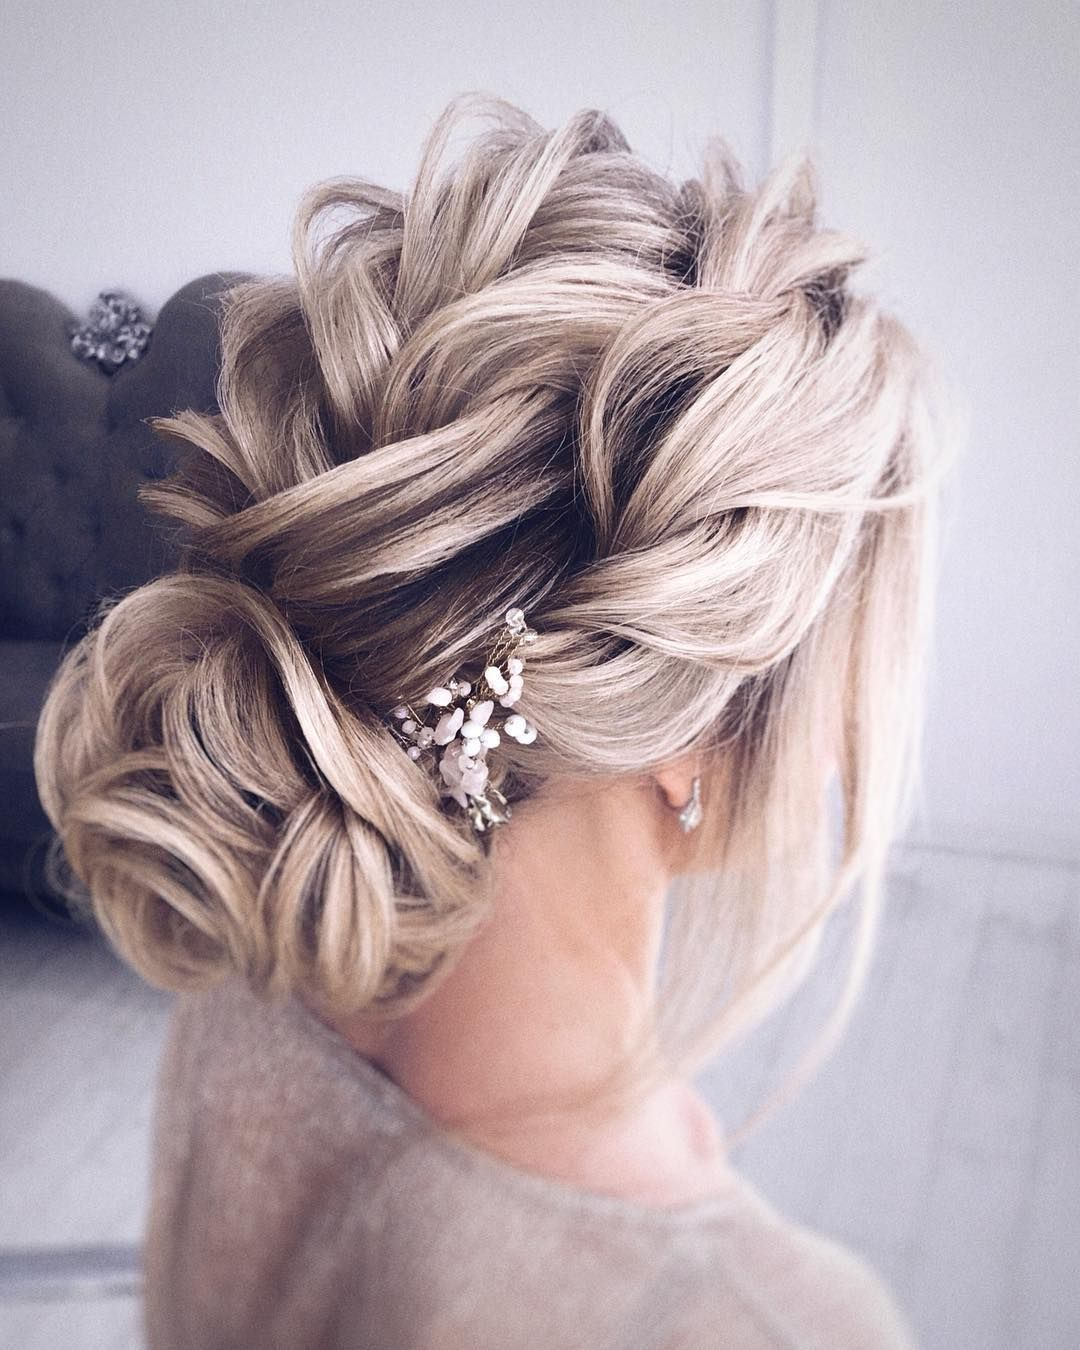 Updo Braided Updo Hairstyle Swept Back Bridal Hairstyle Updo Hairstyles Wedding Hairstyles Weddinghair Long Hair Styles Hair Styles Romantic Wedding Hair